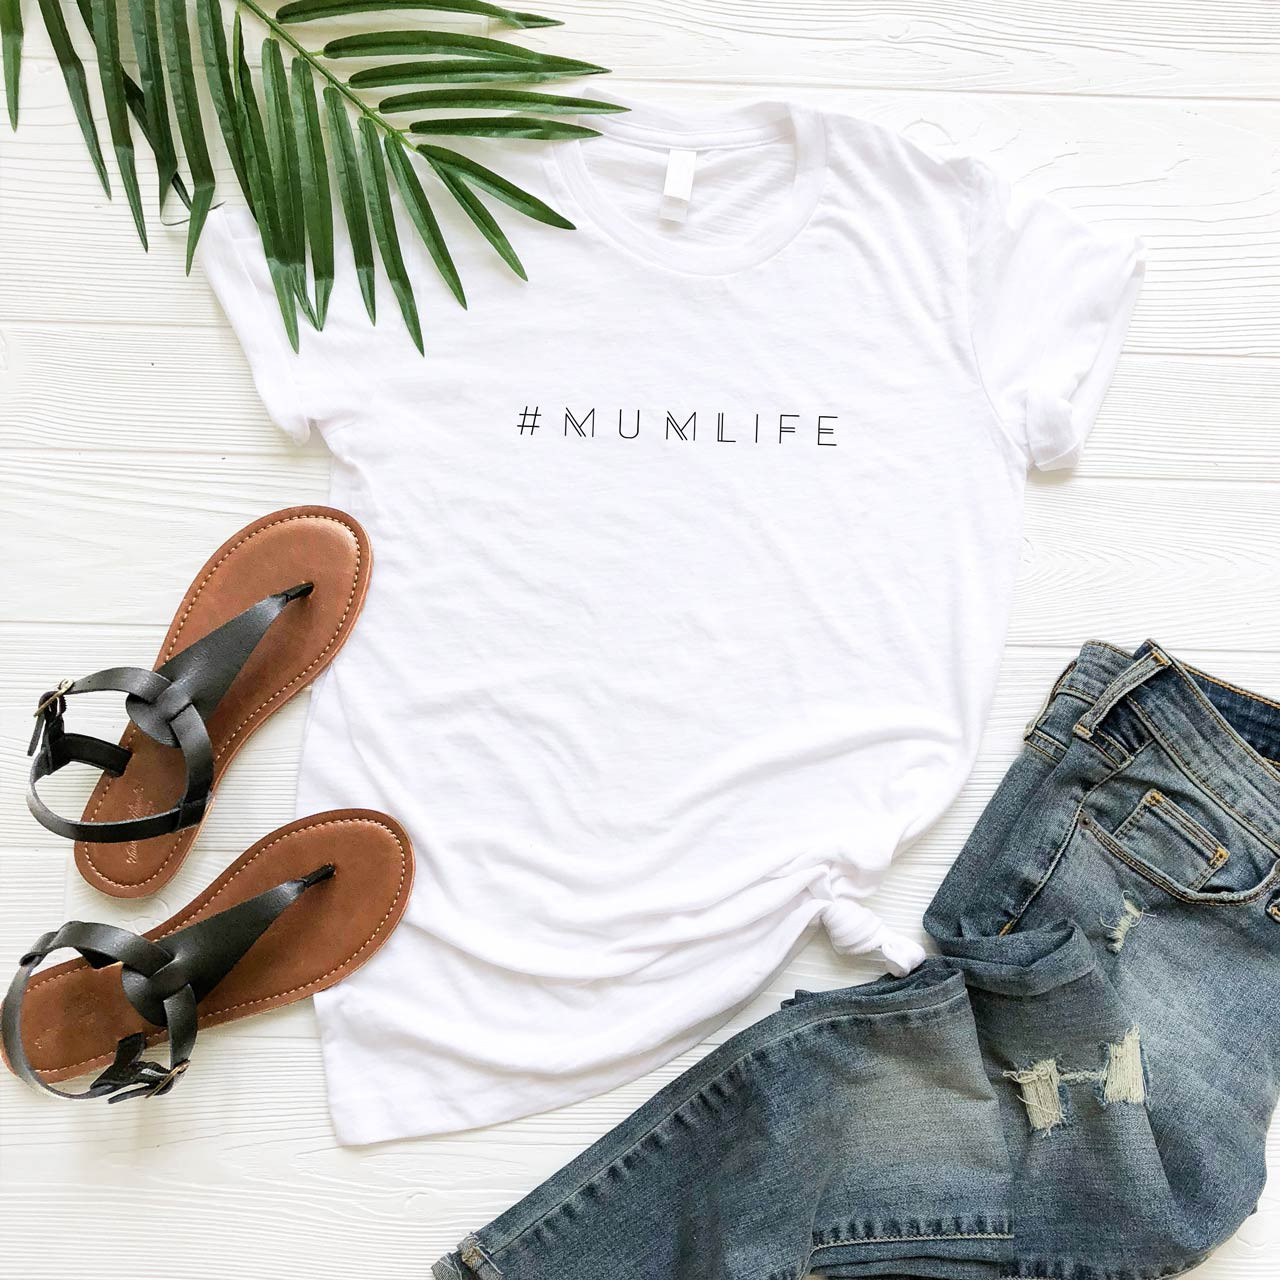 #MUMLIFE Cotton T-Shirt (Black on White) from The Printed Home